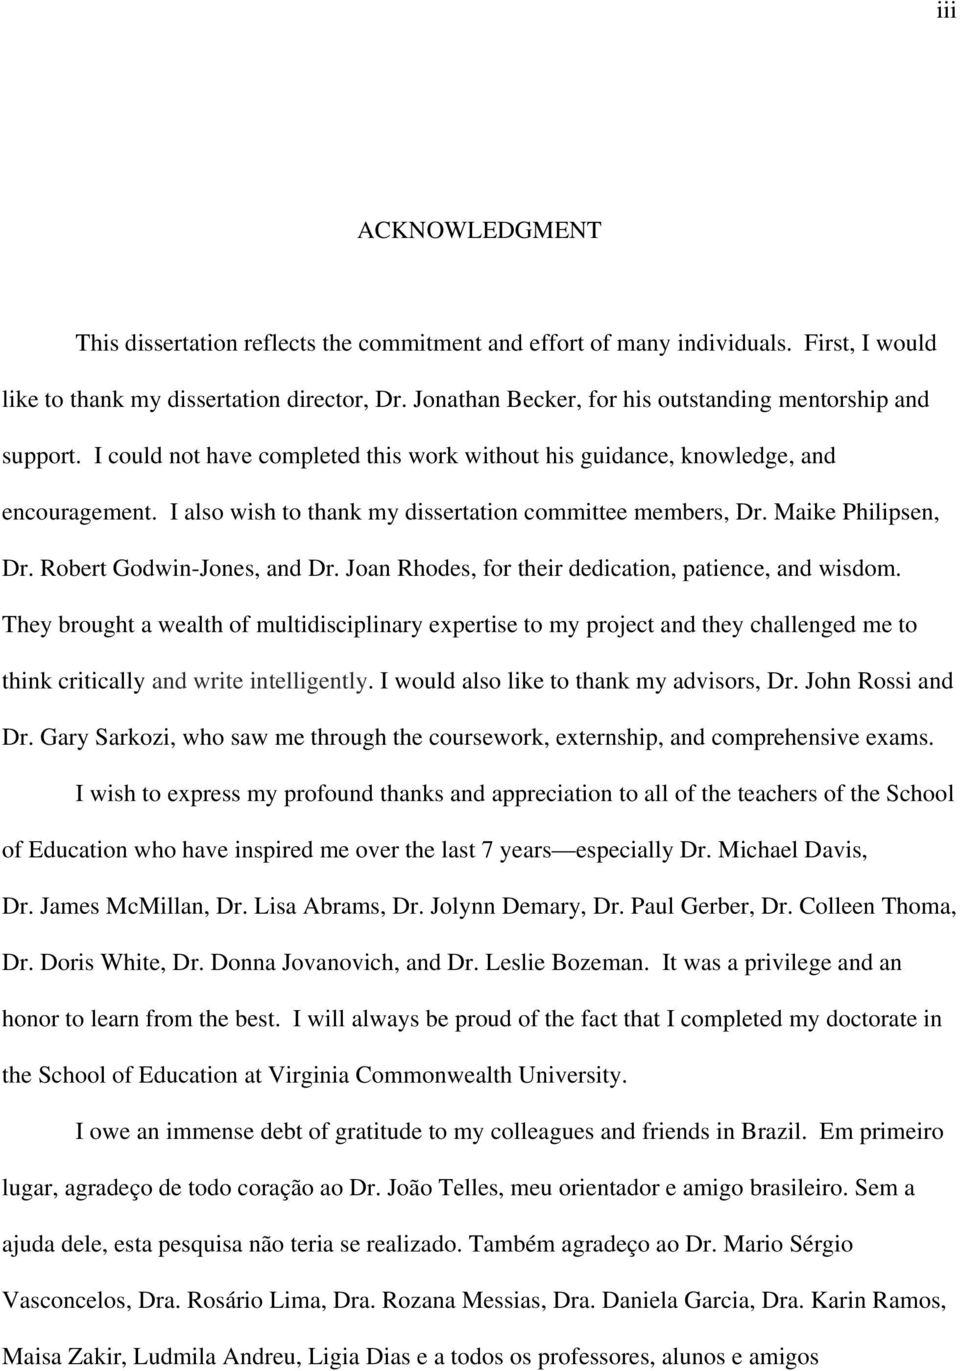 I also wish to thank my dissertation committee members, Dr. Maike Philipsen, Dr. Robert Godwin-Jones, and Dr. Joan Rhodes, for their dedication, patience, and wisdom.